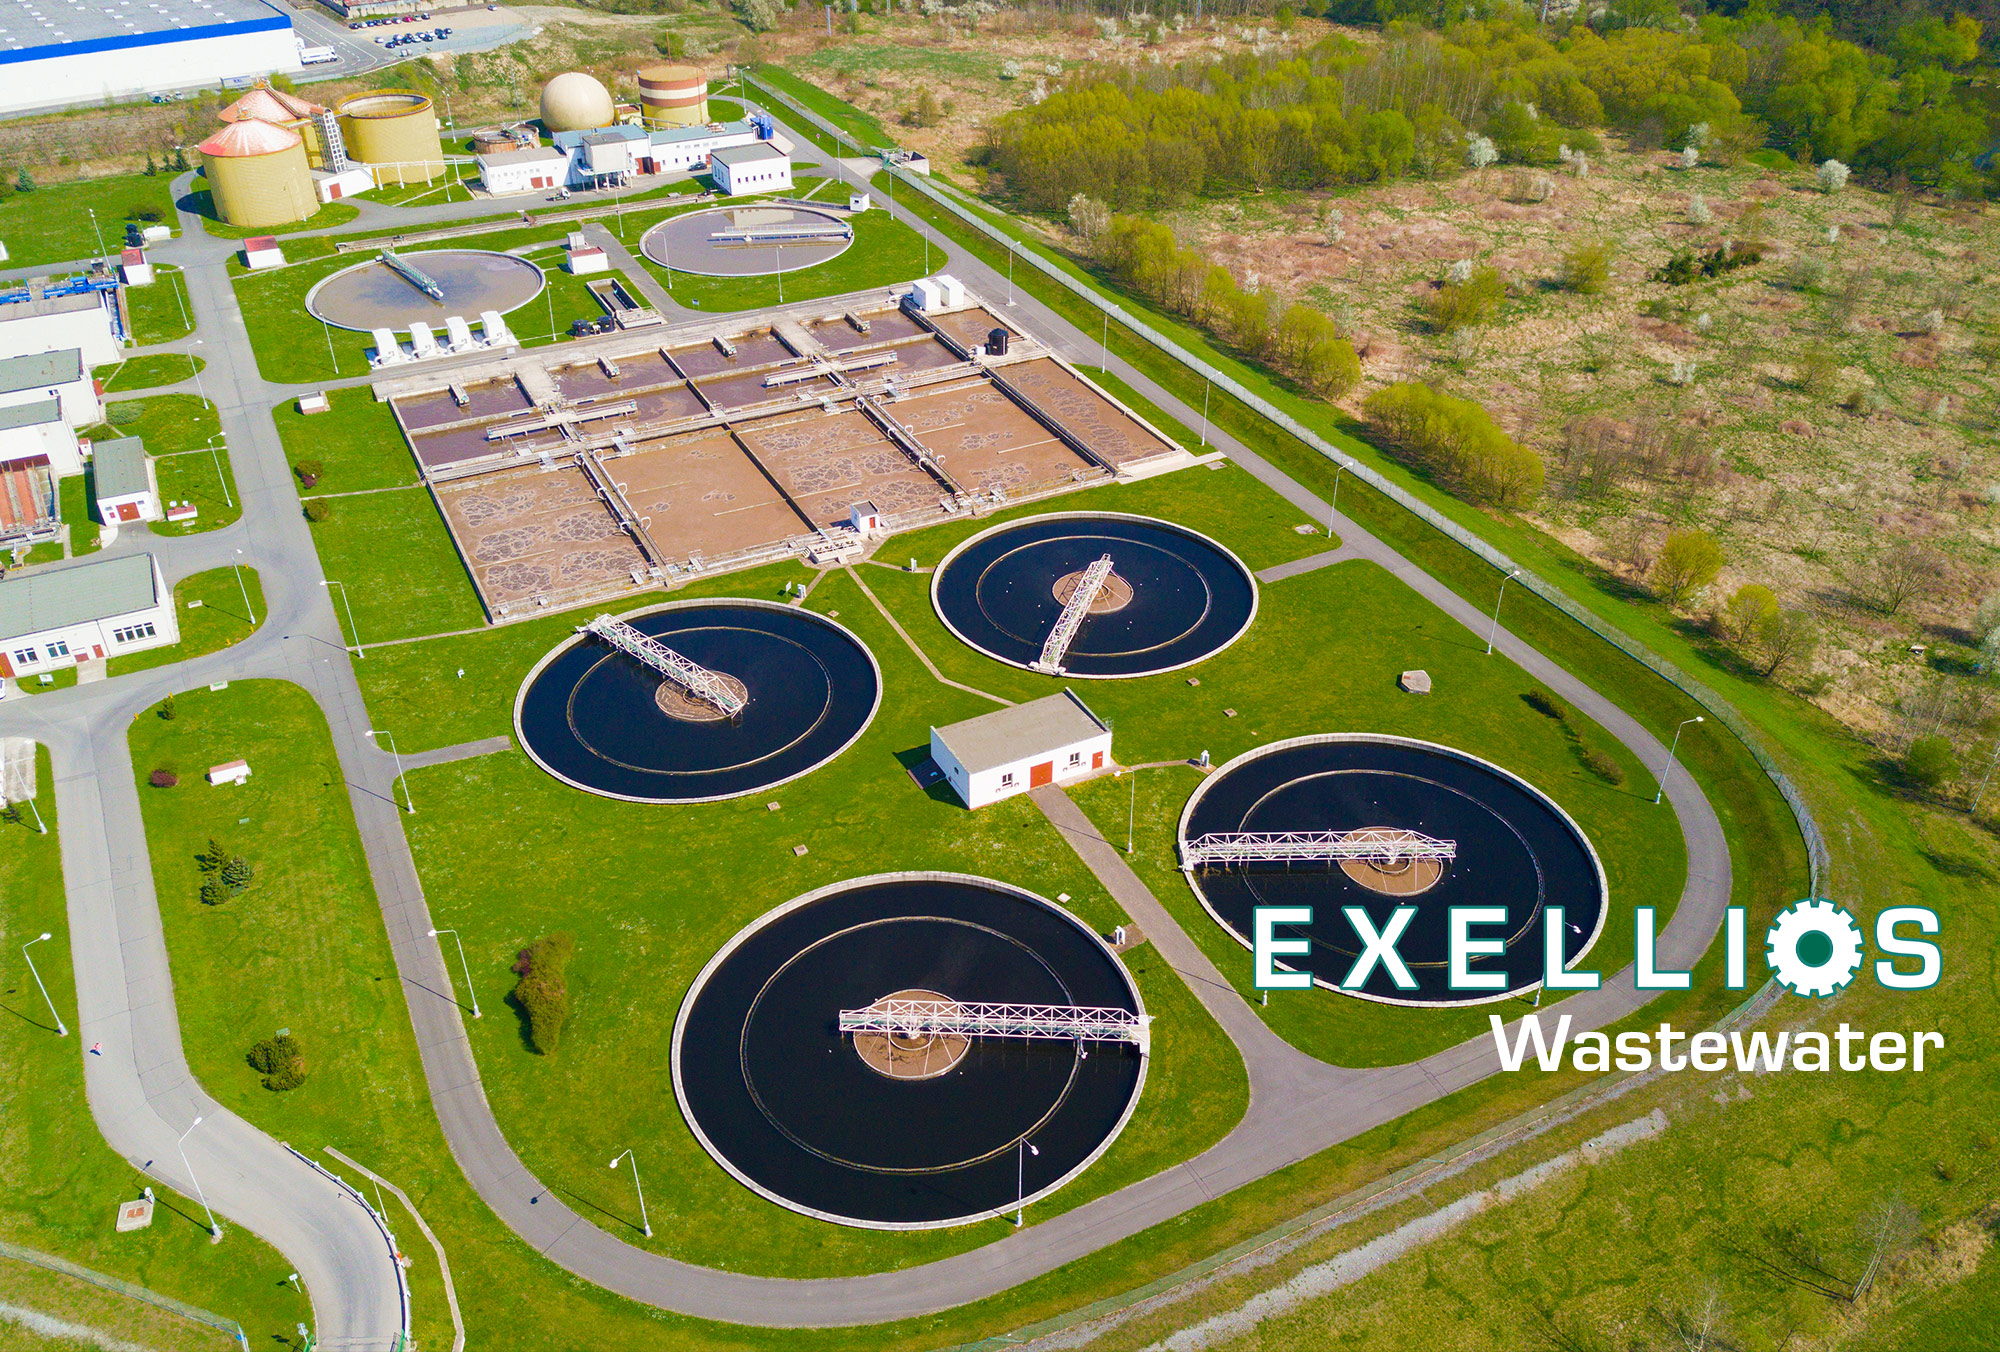 exellios Wastewater Management